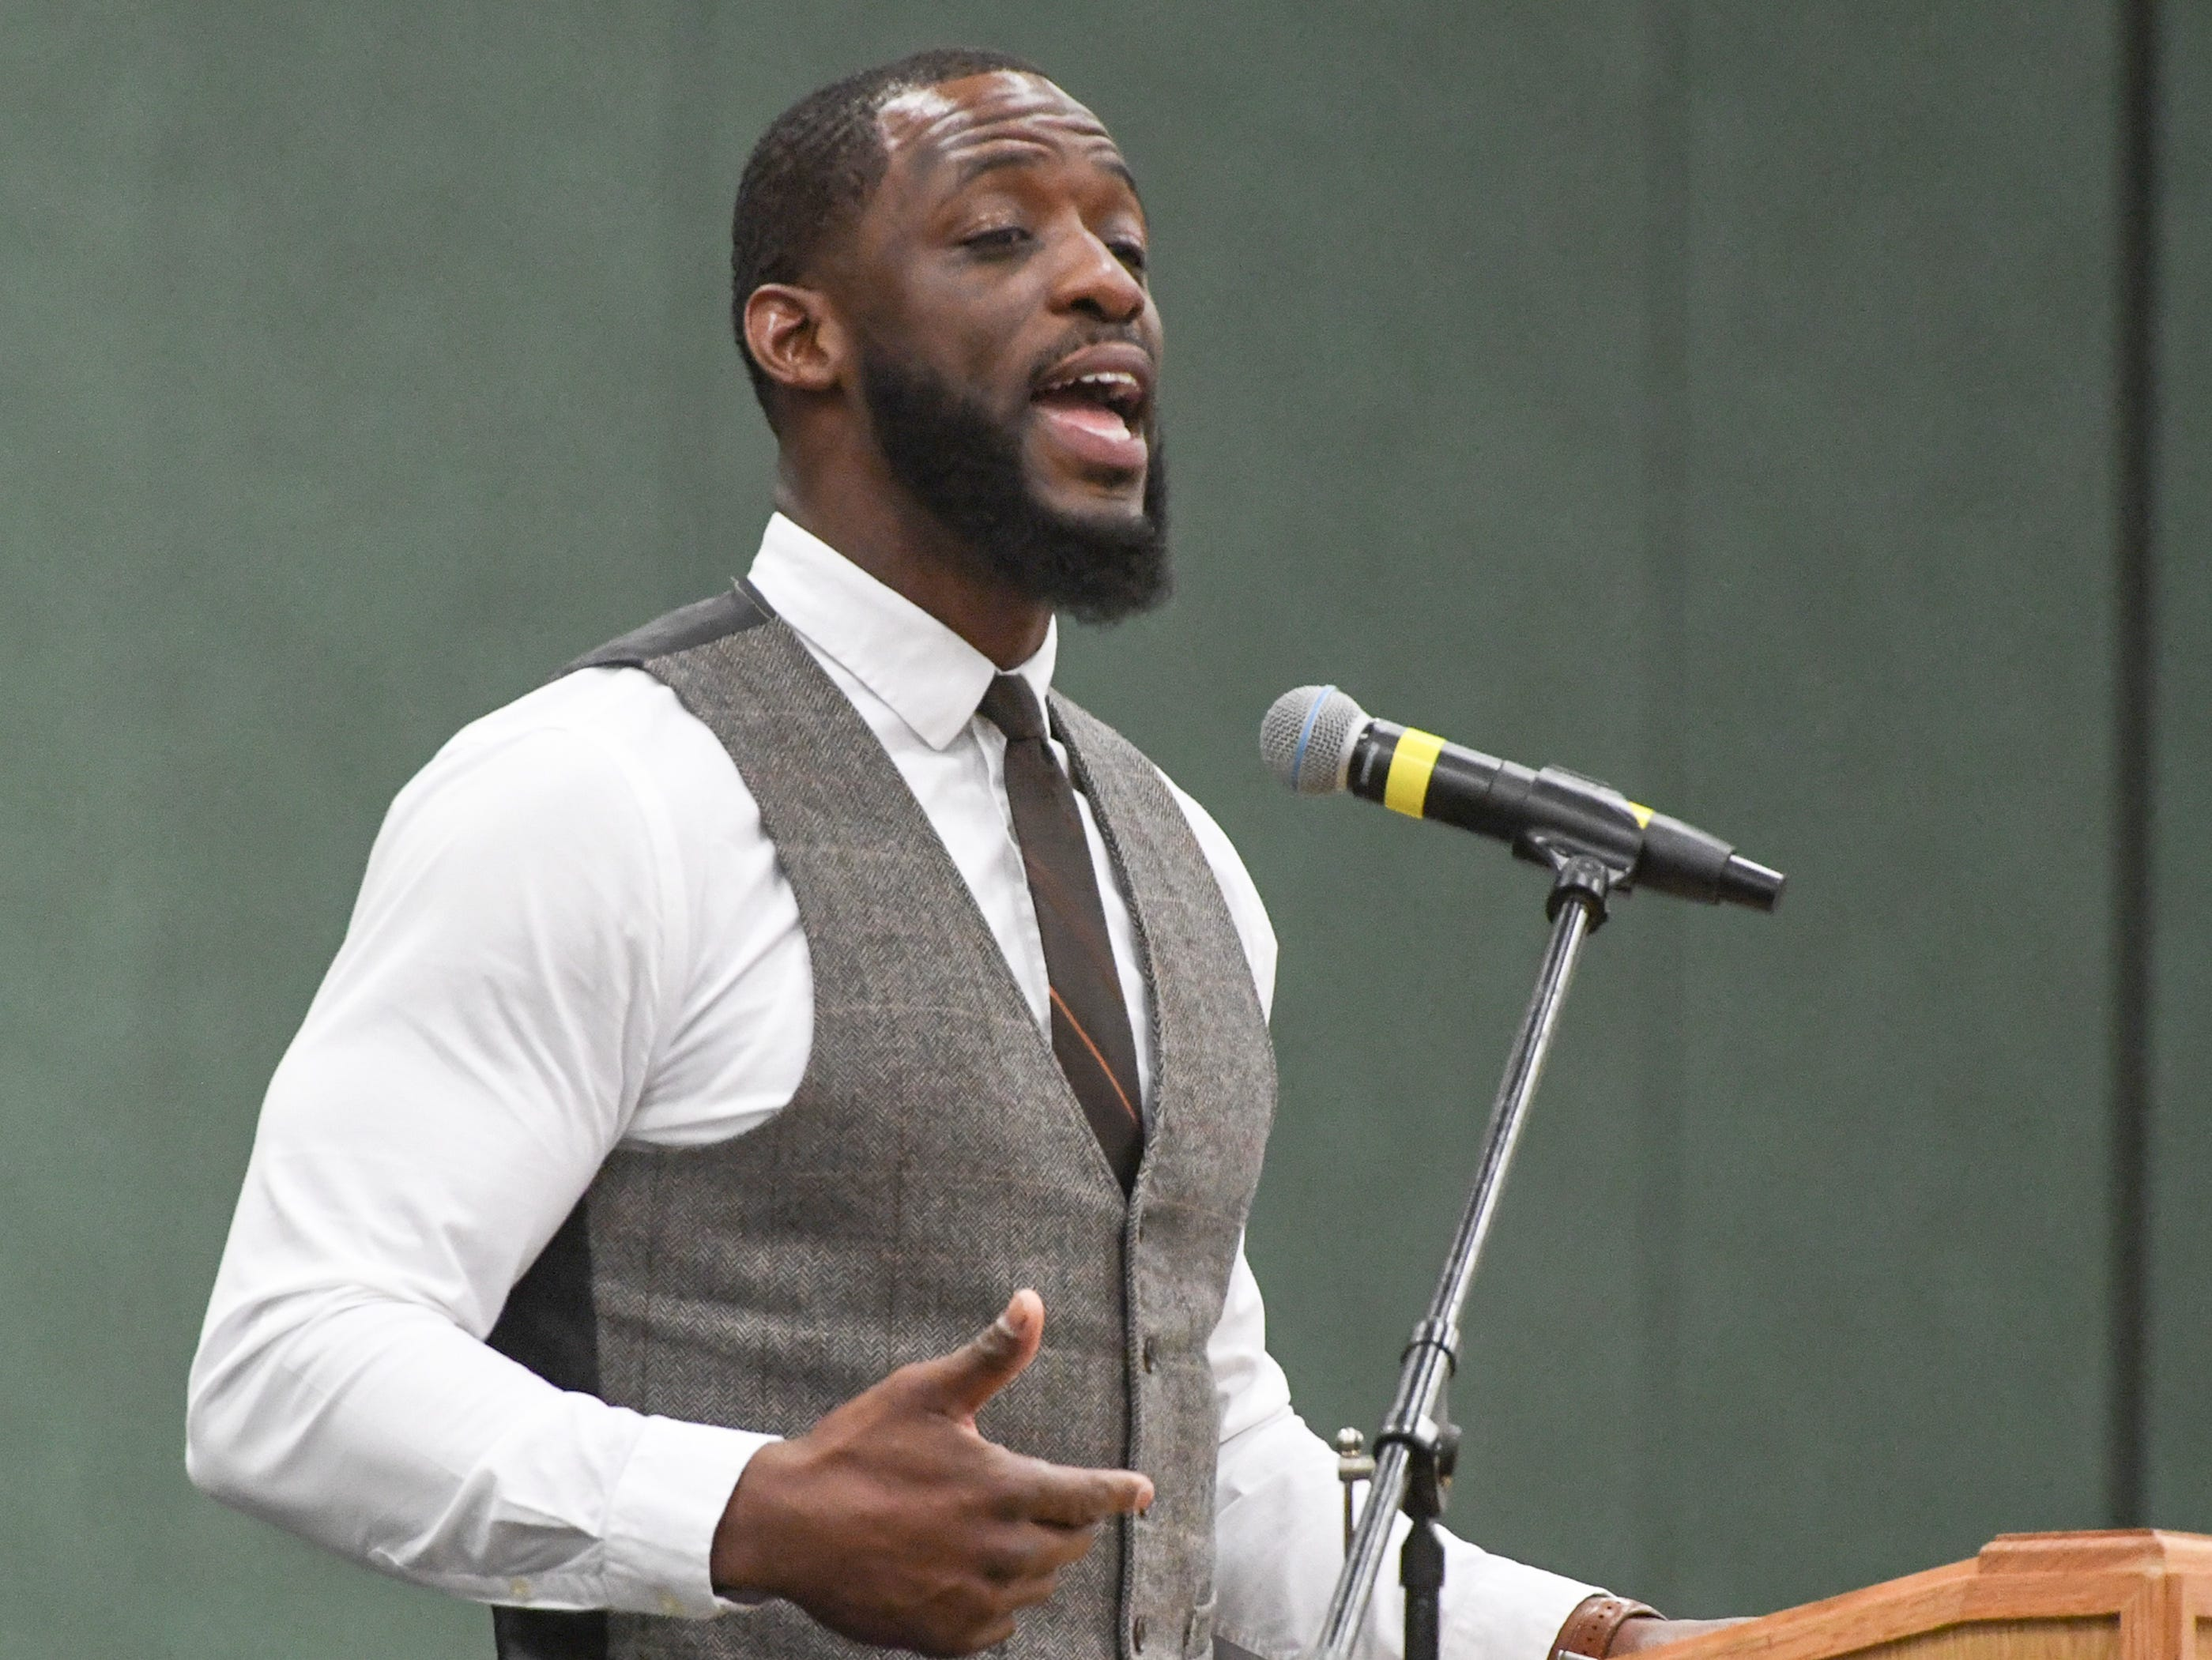 Cyrus Birch of Charleston, an stunt performer as a Jabari warrior in Marvel Studio's Black Panther, speaks during the Anderson County Martin Luther King, Jr. Celebration in Anderson January 21, 2019.